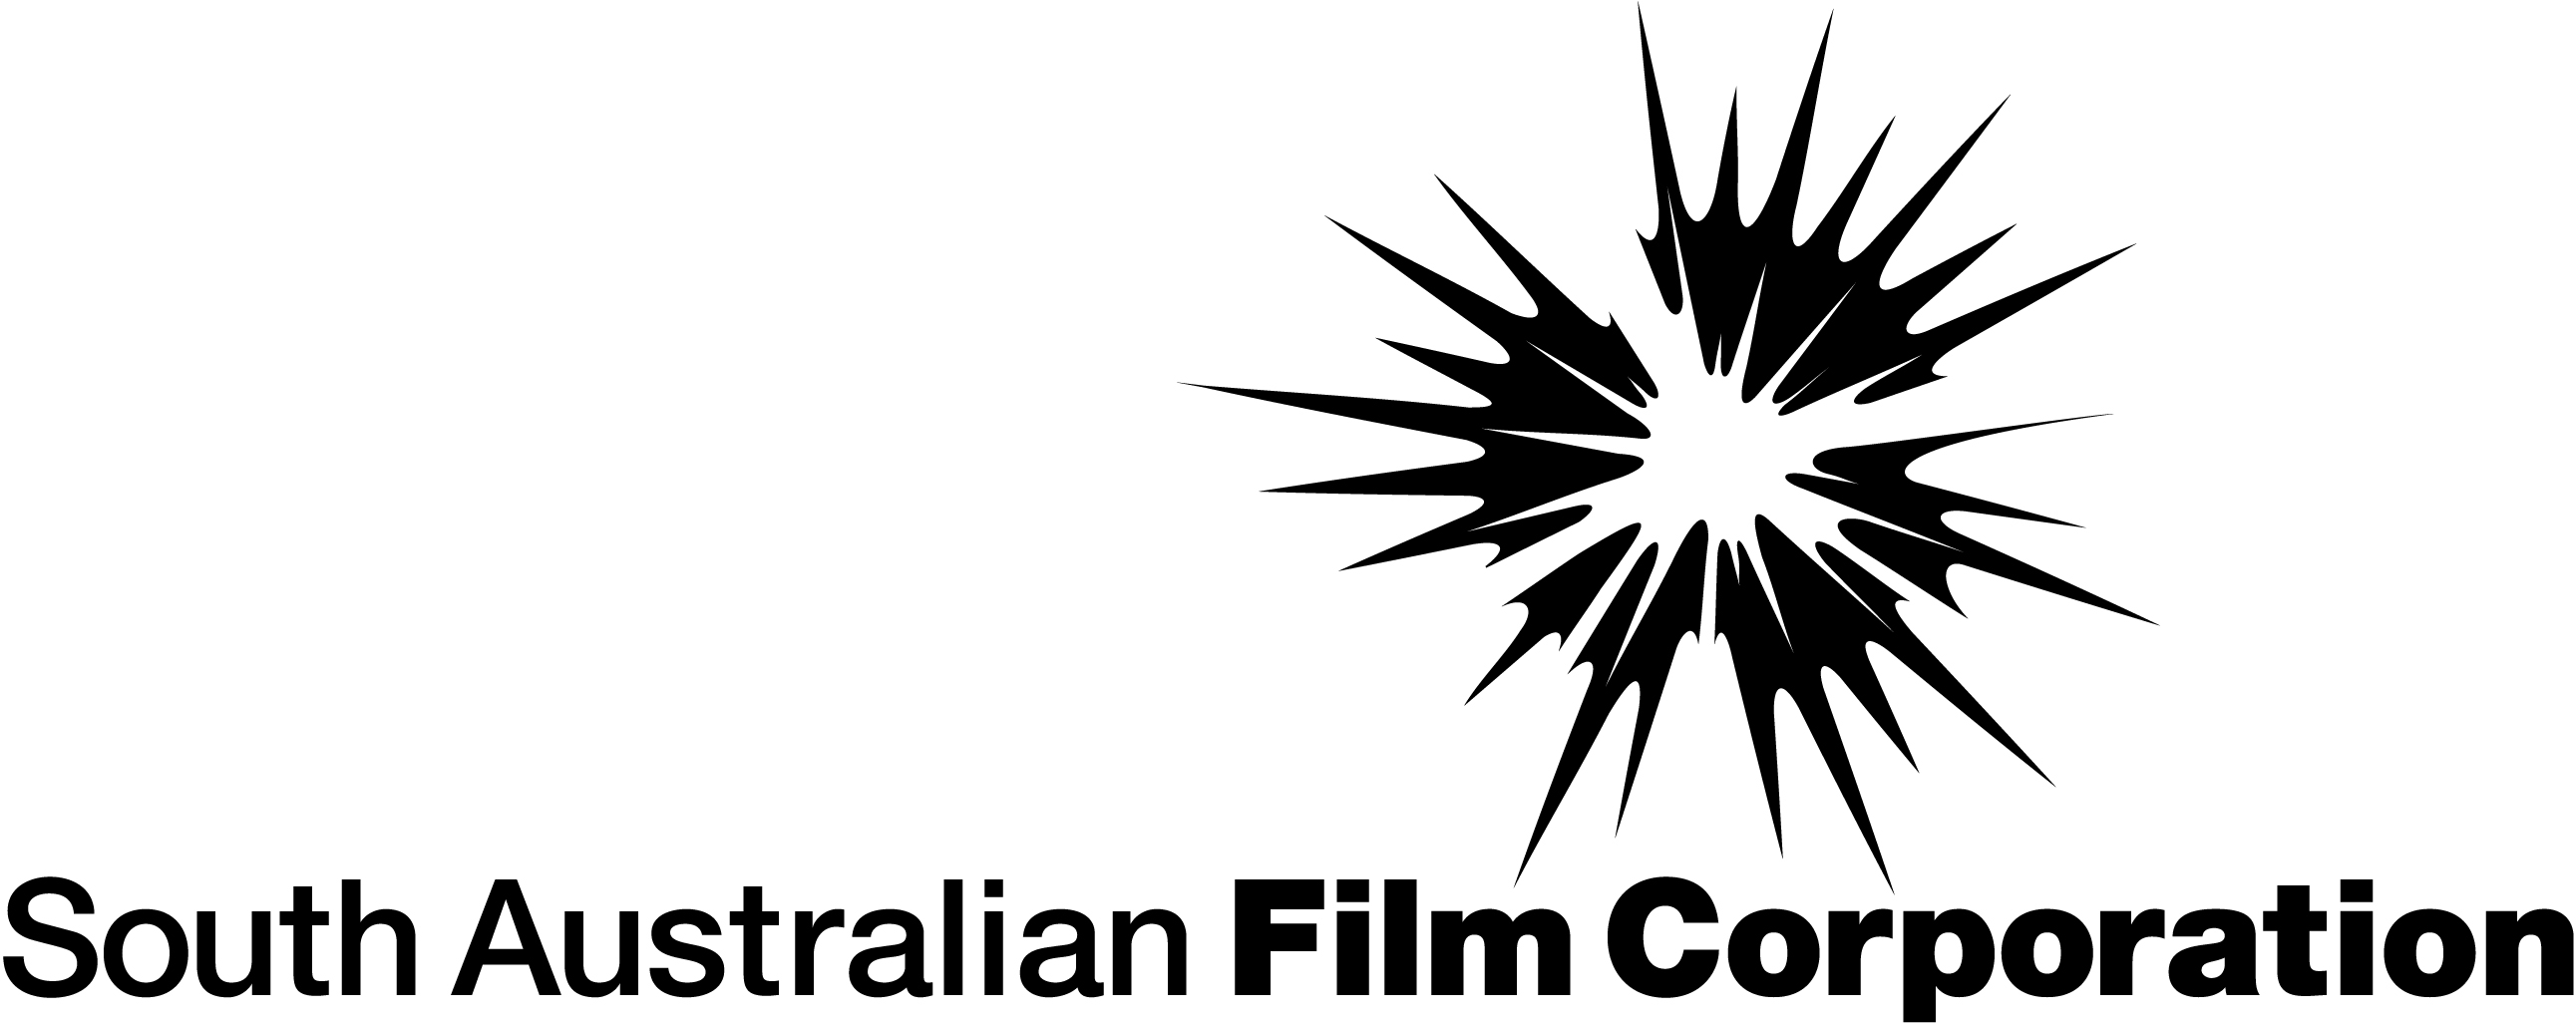 south-australian-film-corporation